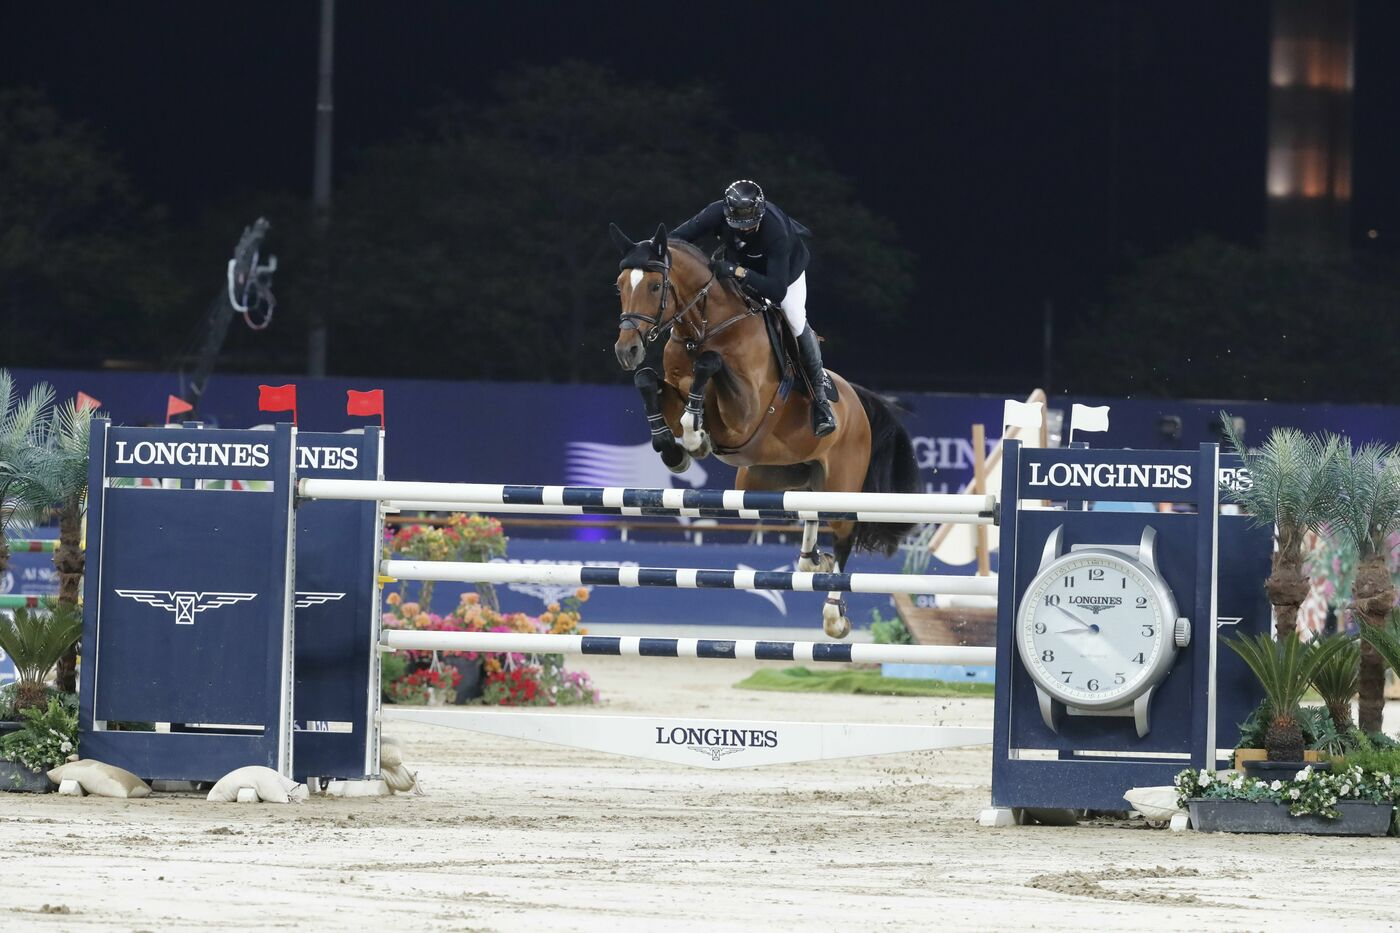 Longines Show Jumping Event: Doha hosted the world's best riders and horses for the launch of the new Longines Global Champions Tour season 1